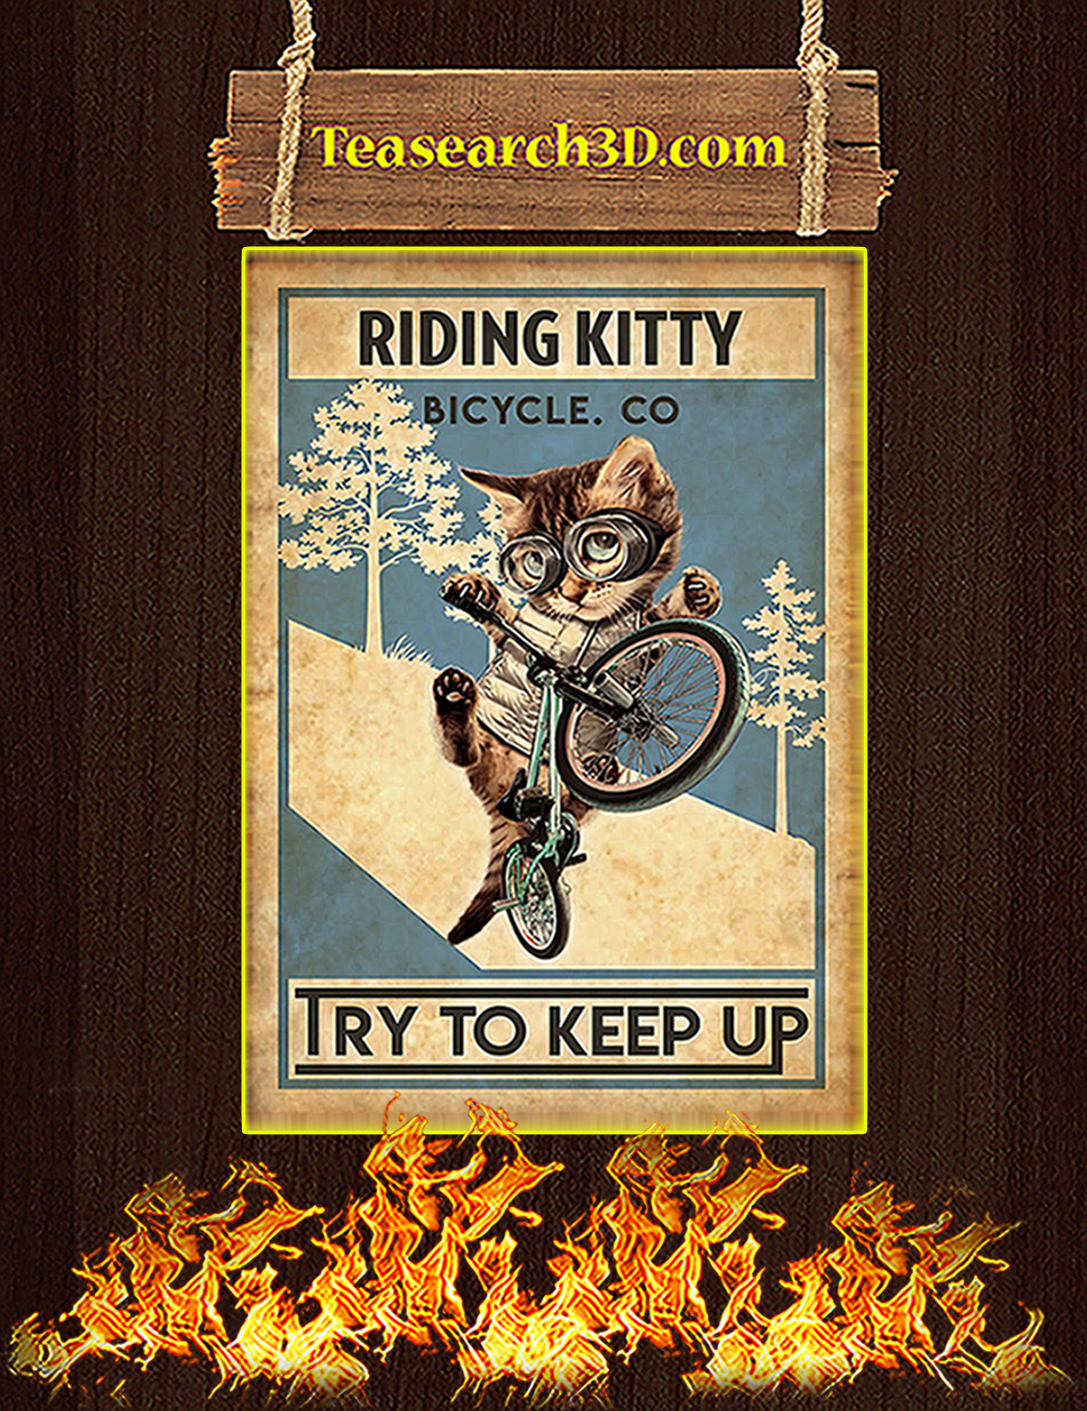 Cat riding kitty bicycle co try to keep up poster A2